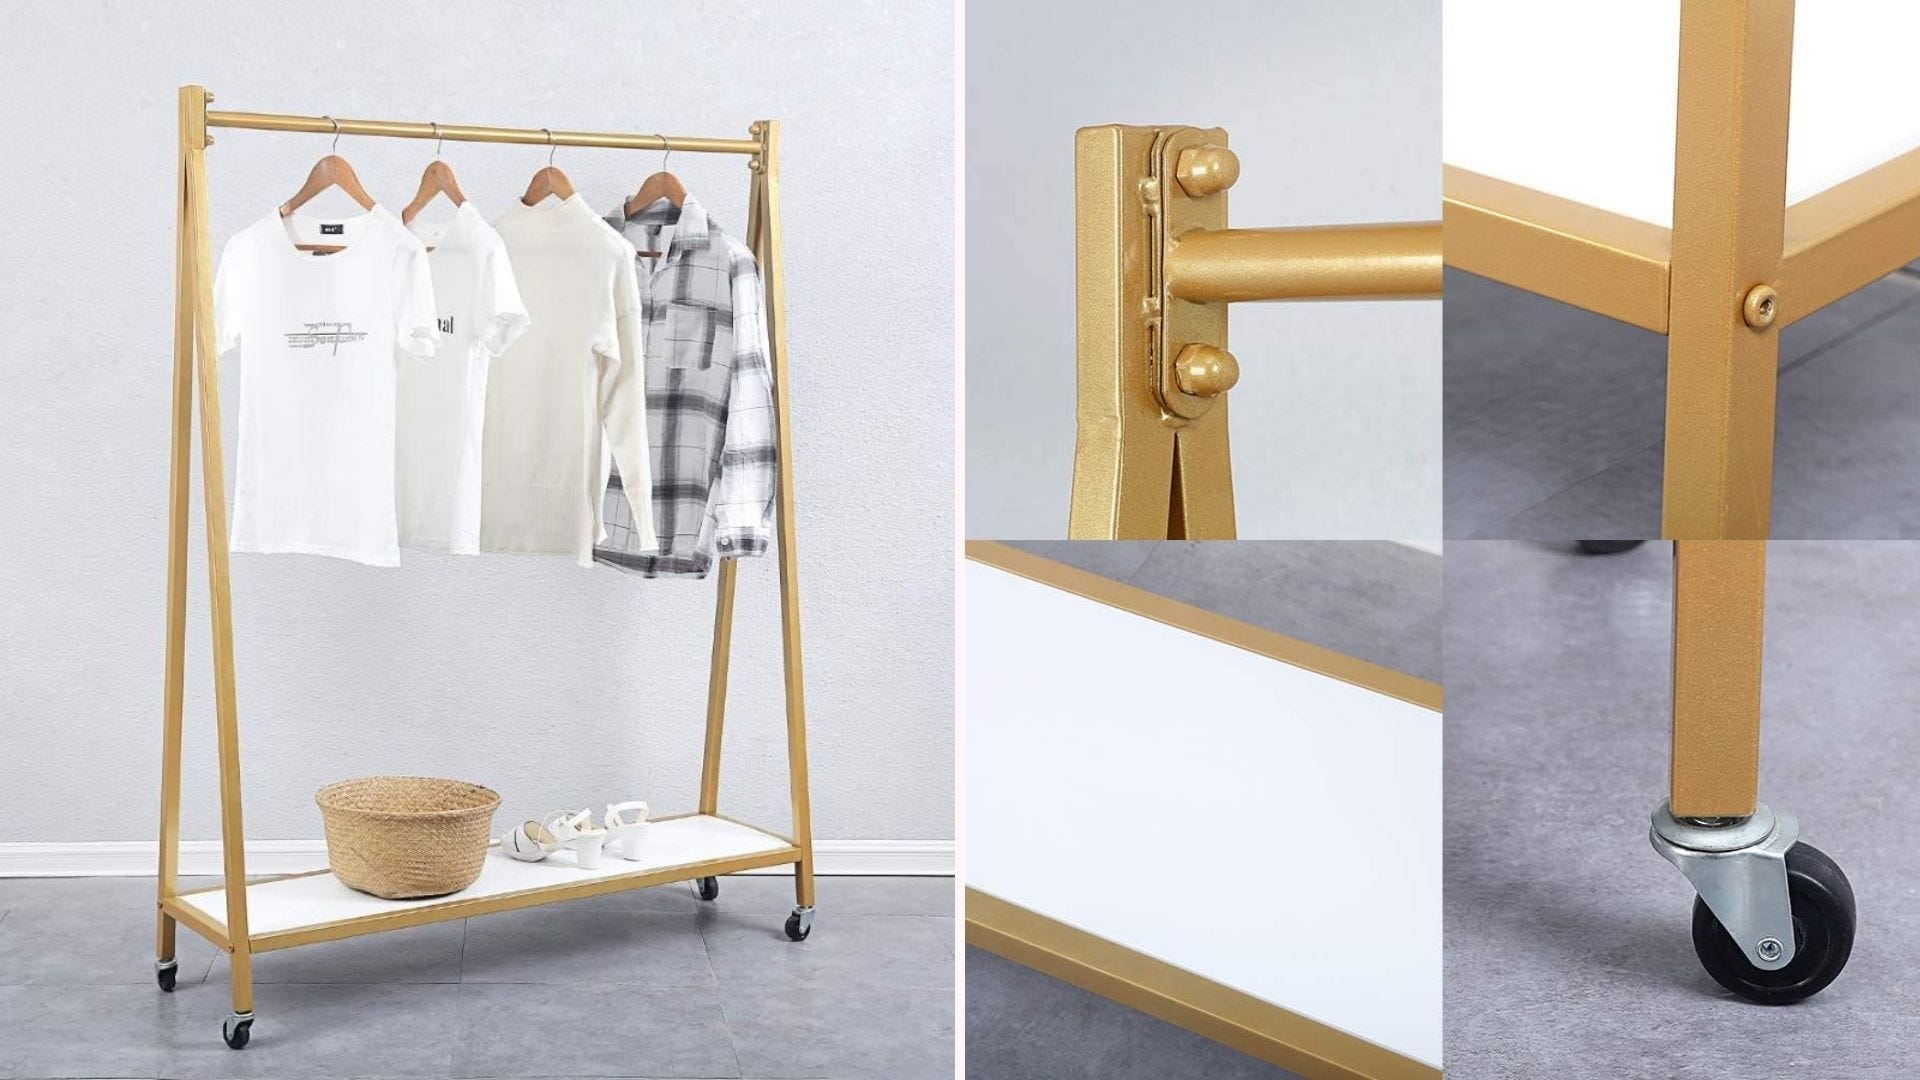 A retro iron clothing rack in gold with clothes hanging on it, and closeups of the rack, shelf, and a caster.